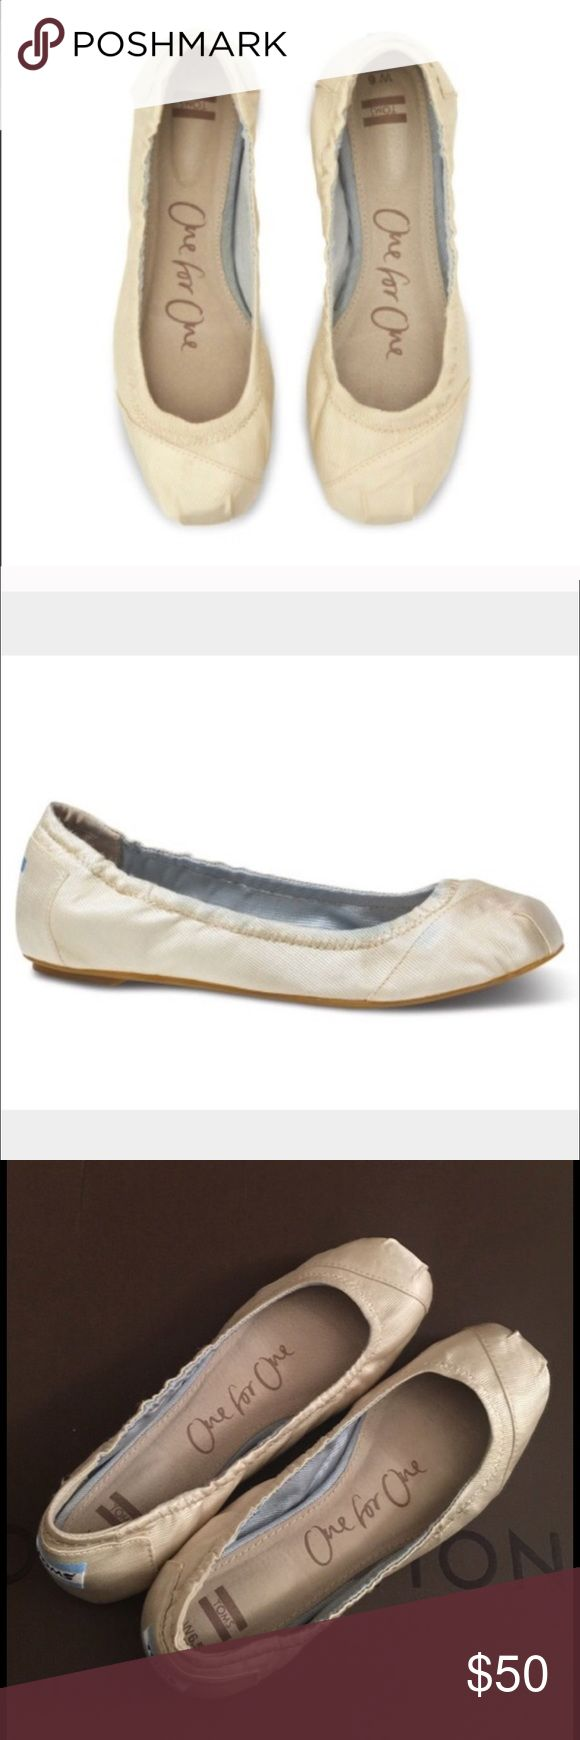 Toms ballerina flats Like new worn twice TOMS Shoes Flats & Loafers